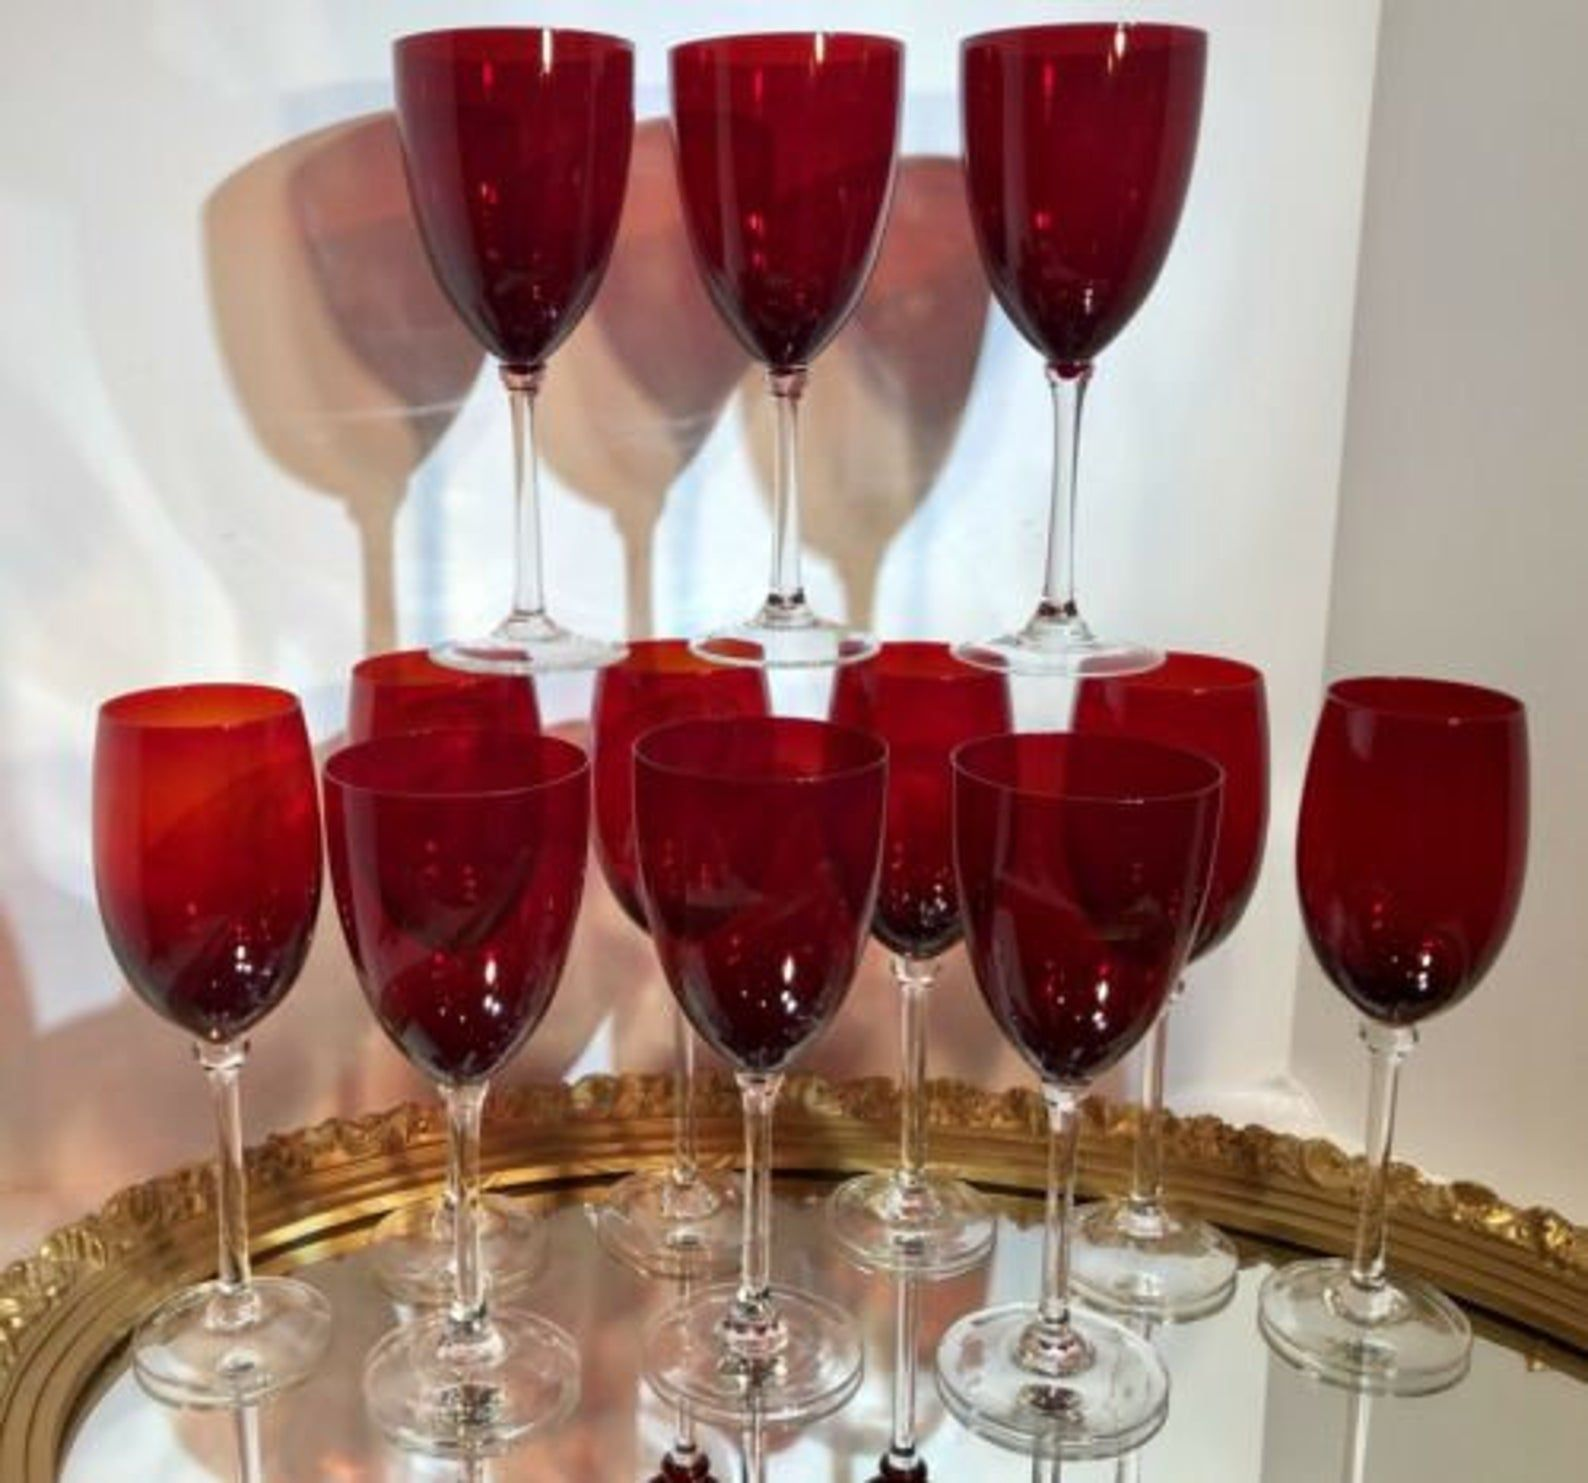 12 Ruby Red Glasses Hand Blown Water Glasses Wine Goblets 6 Ea Hold 12 Oz Wine Glass Sizes Hand Blown Wine Goblets